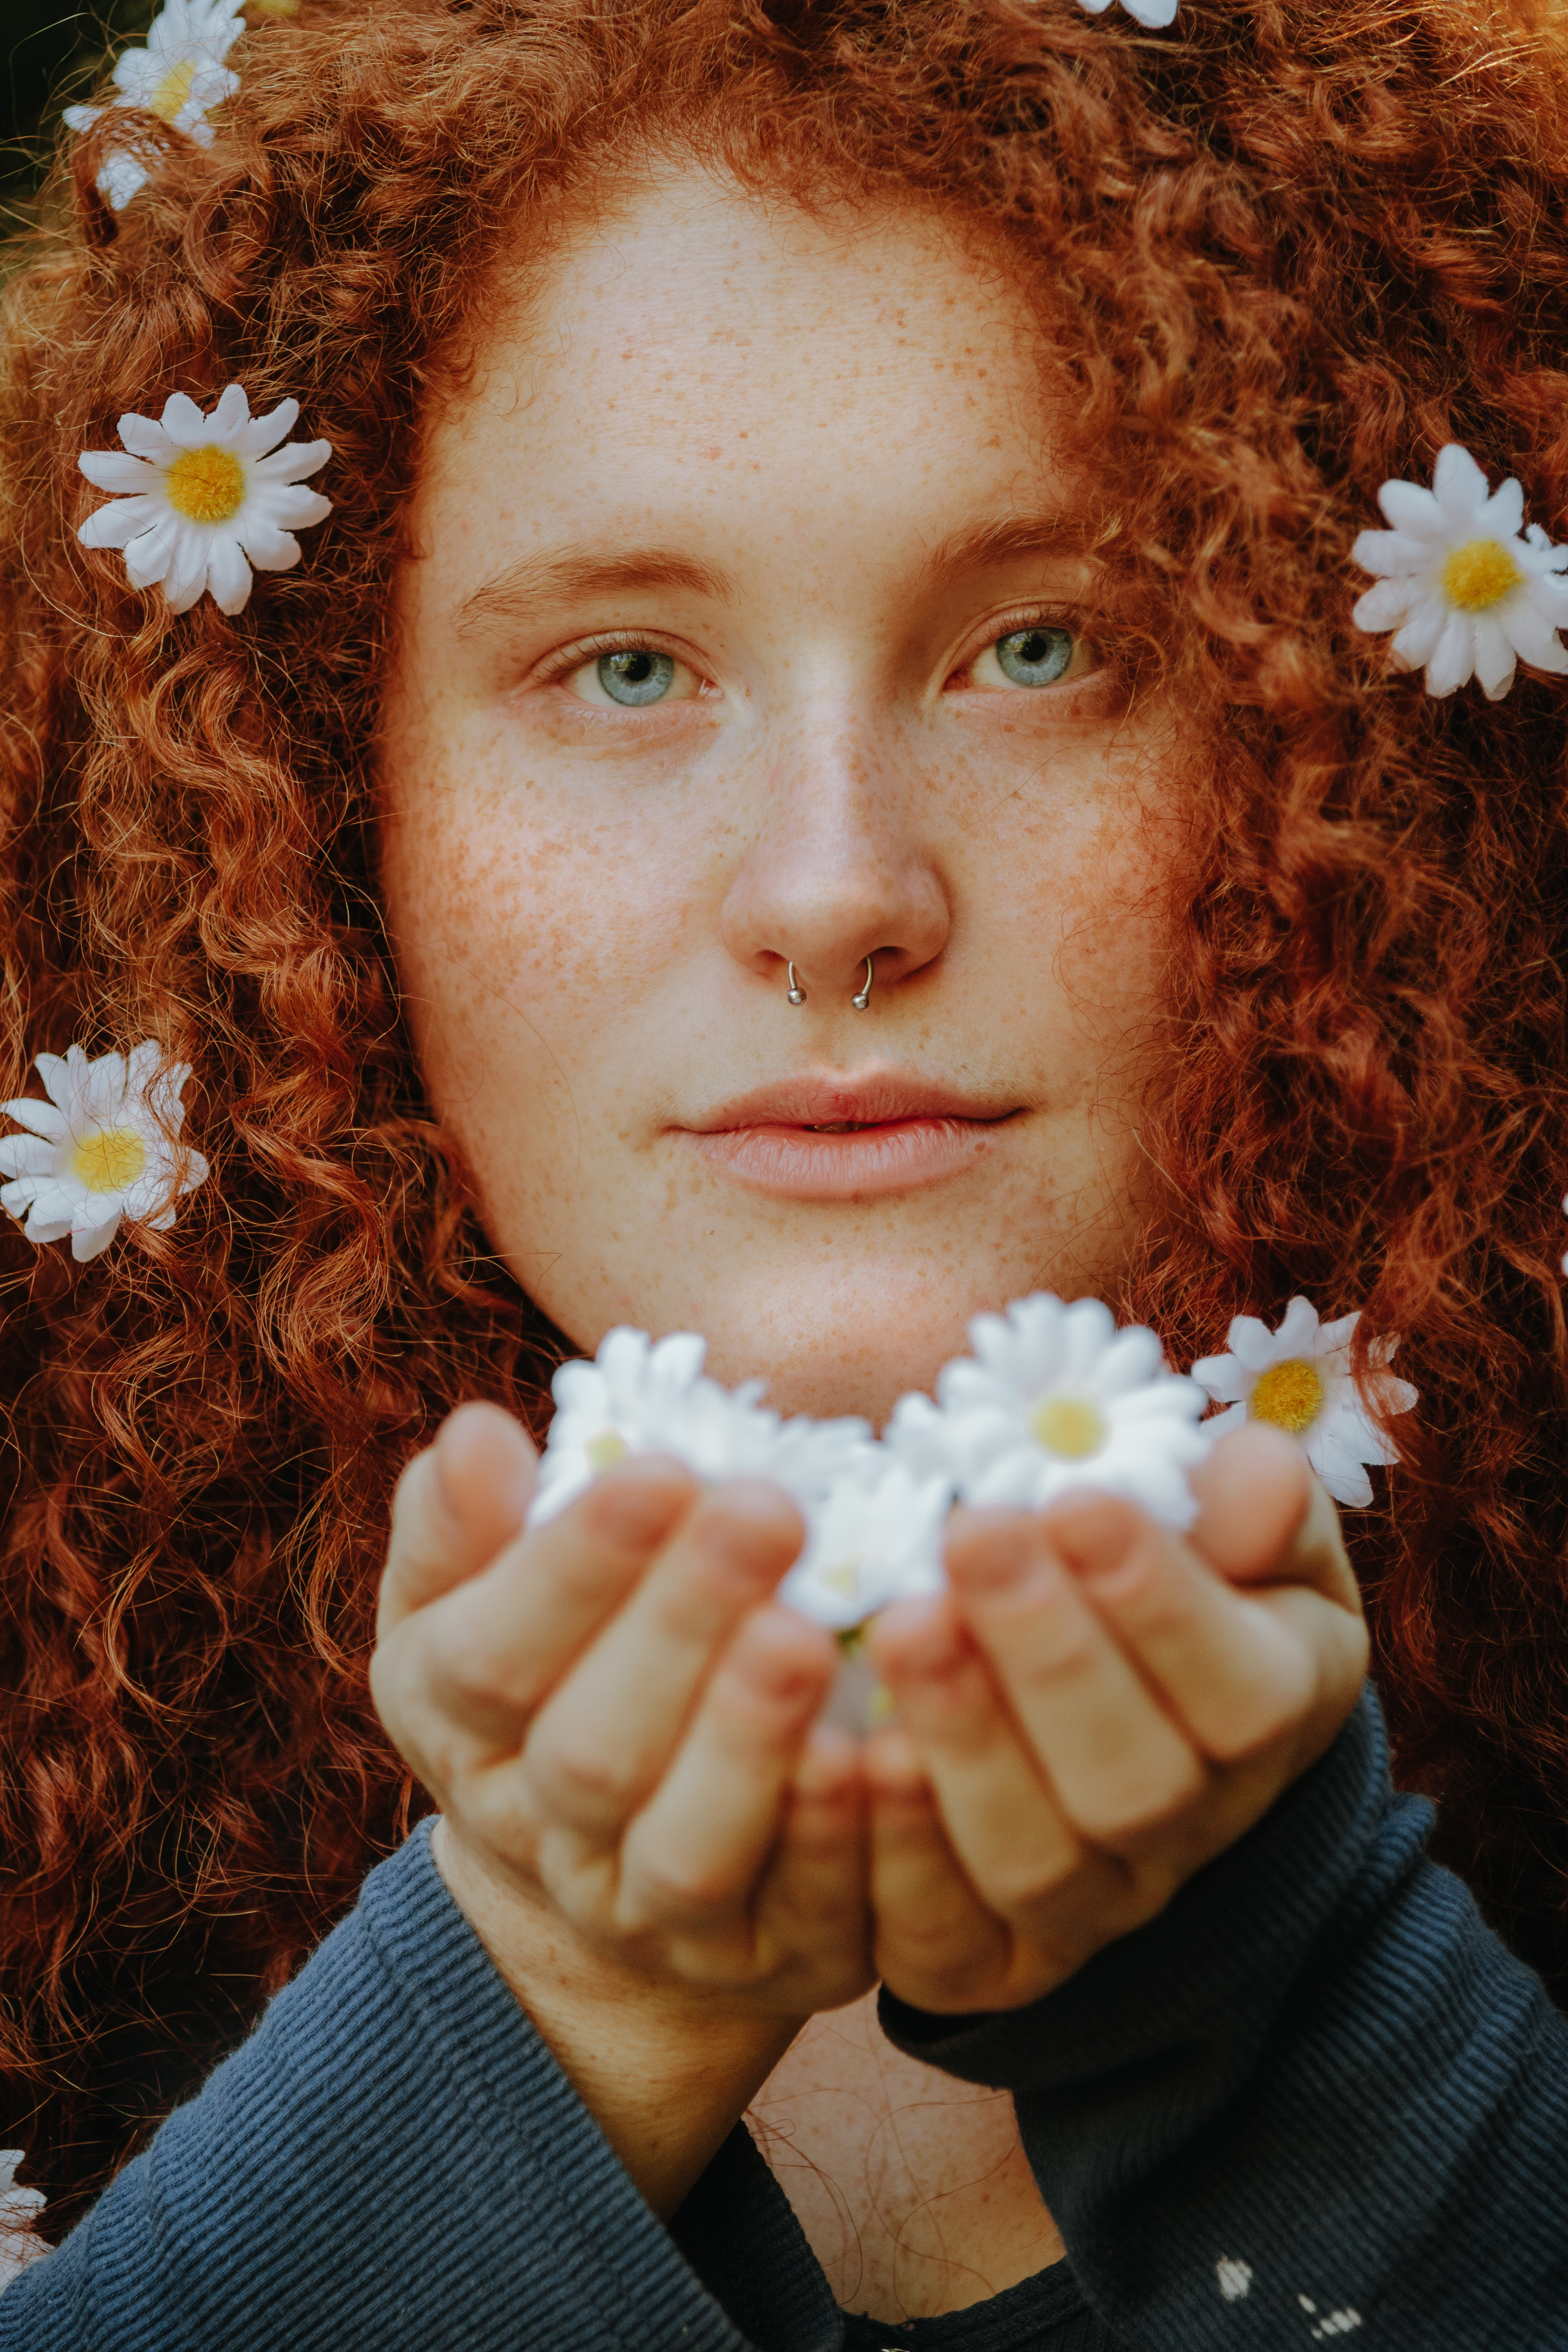 A woman with pierced nose holding daisies